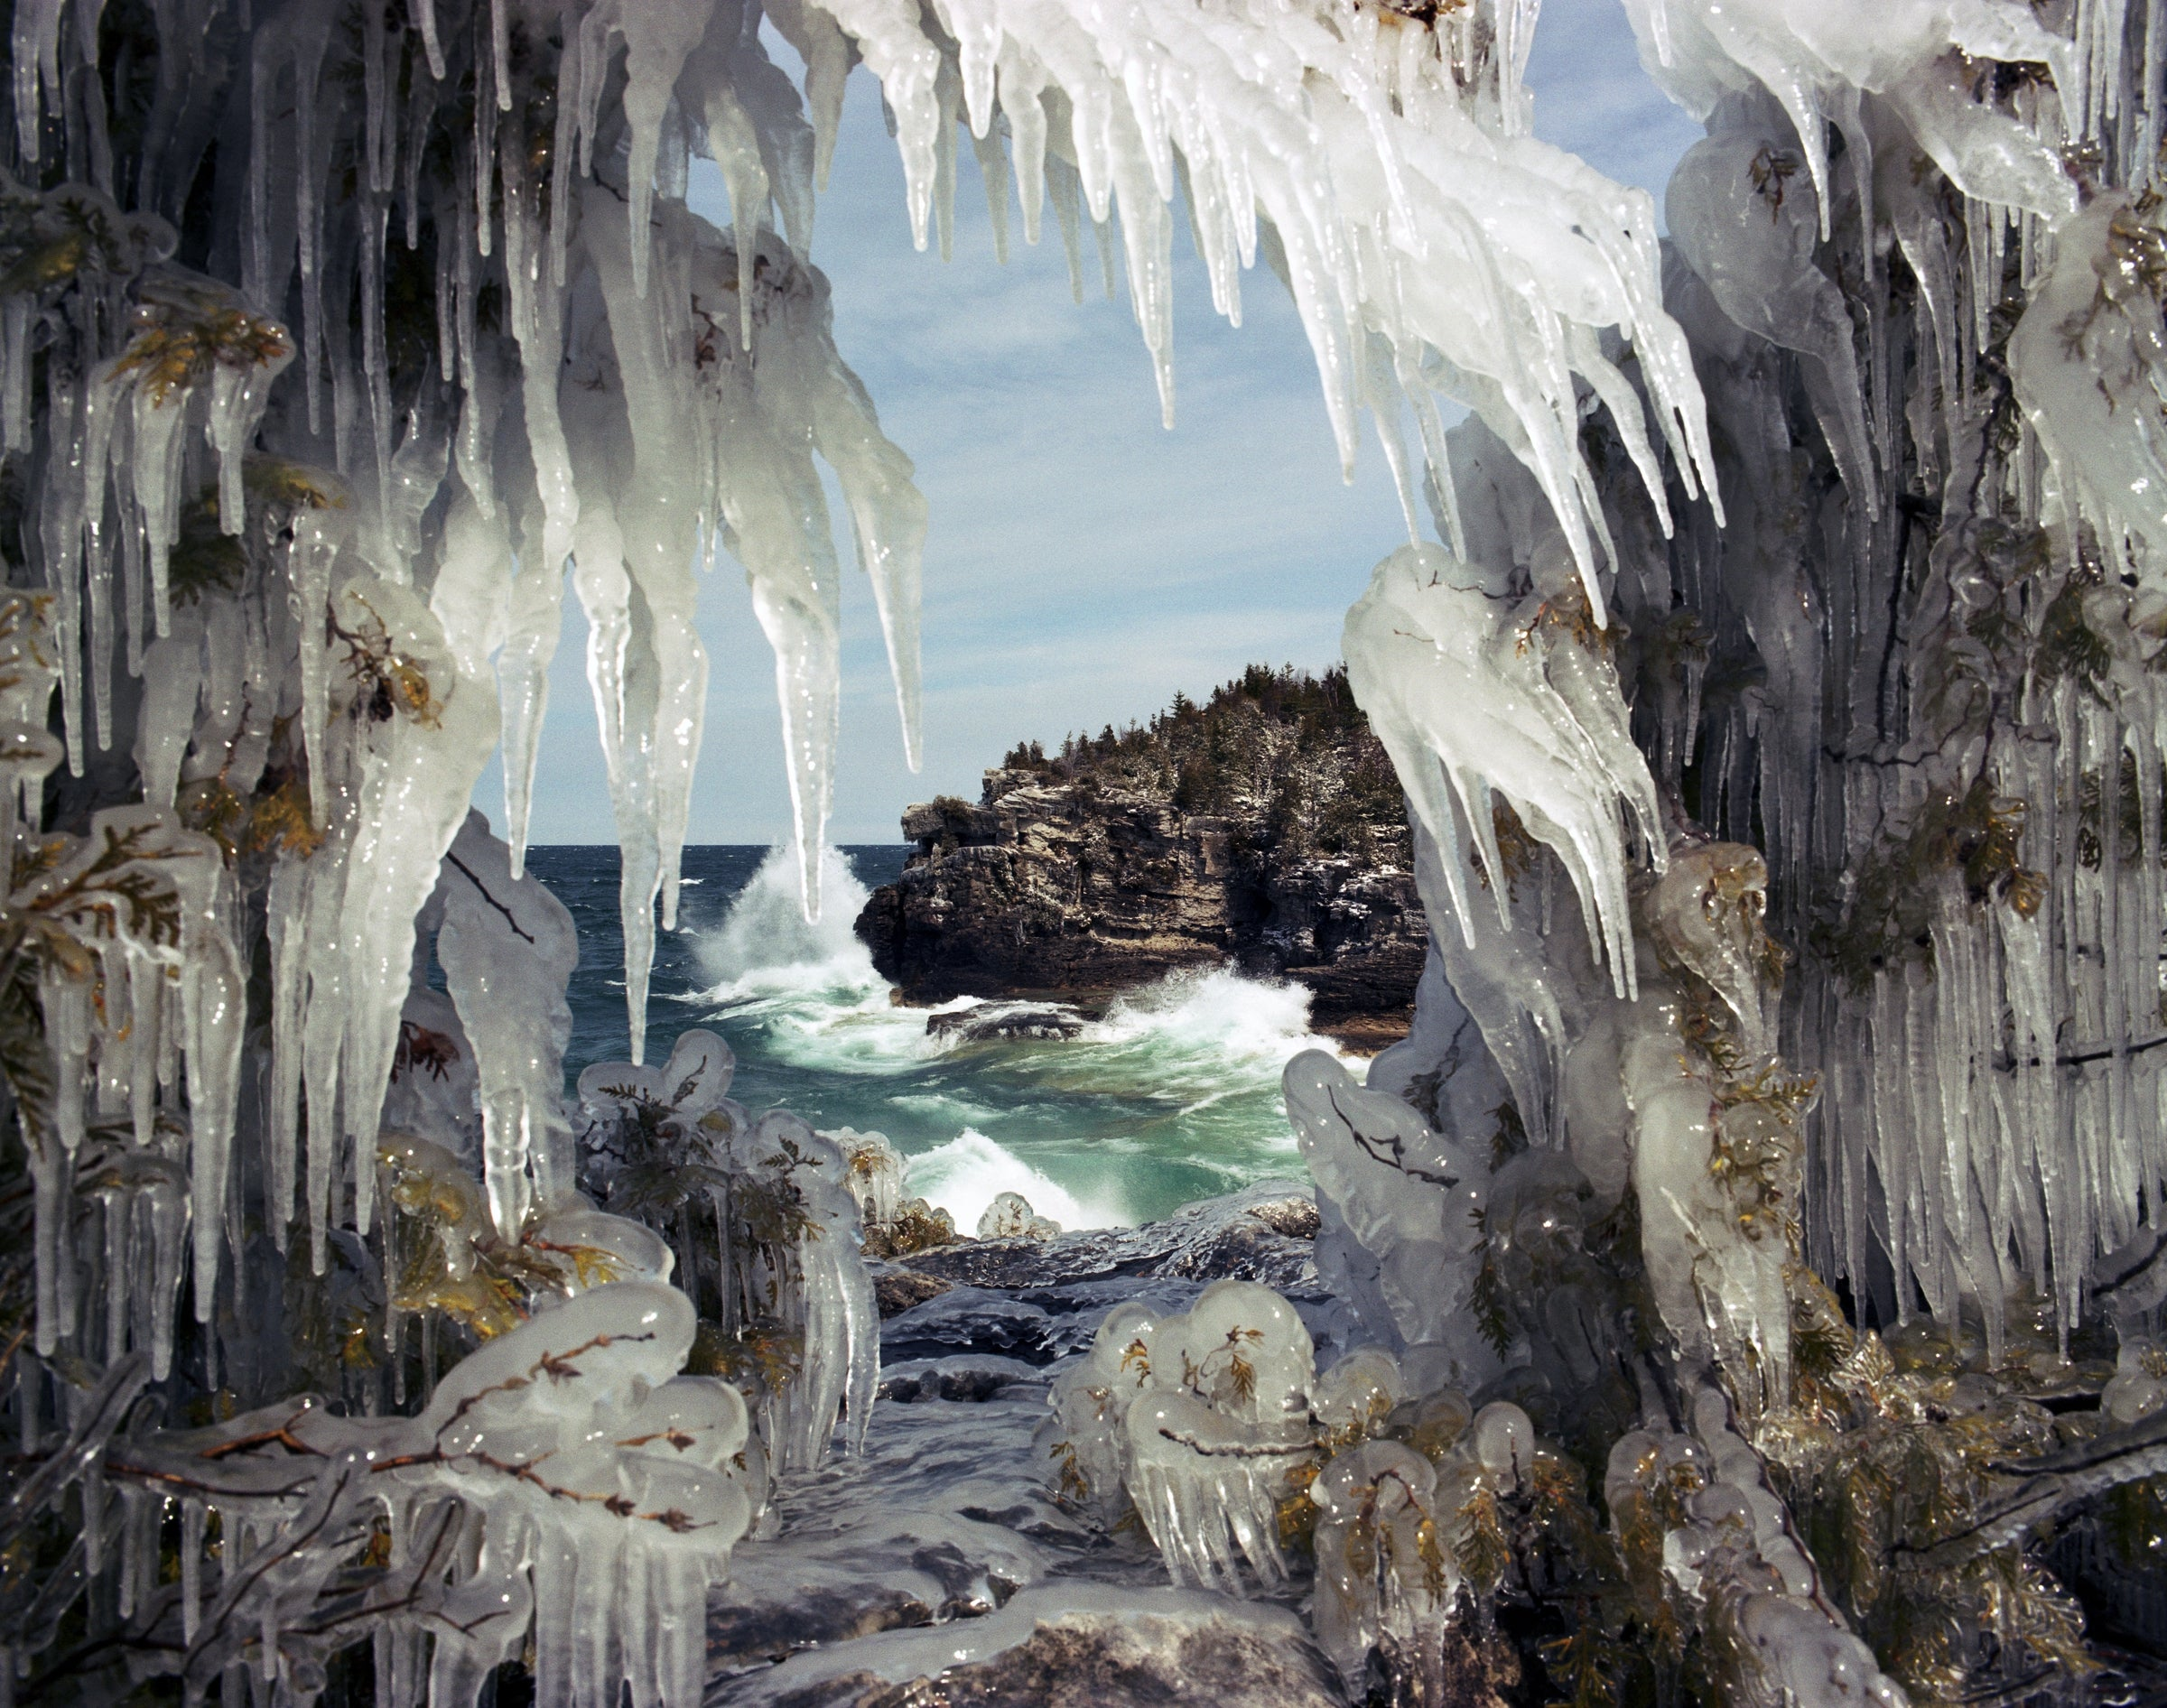 Ontario Ice Caves, Canada: See them now, as climate change may pose a threat